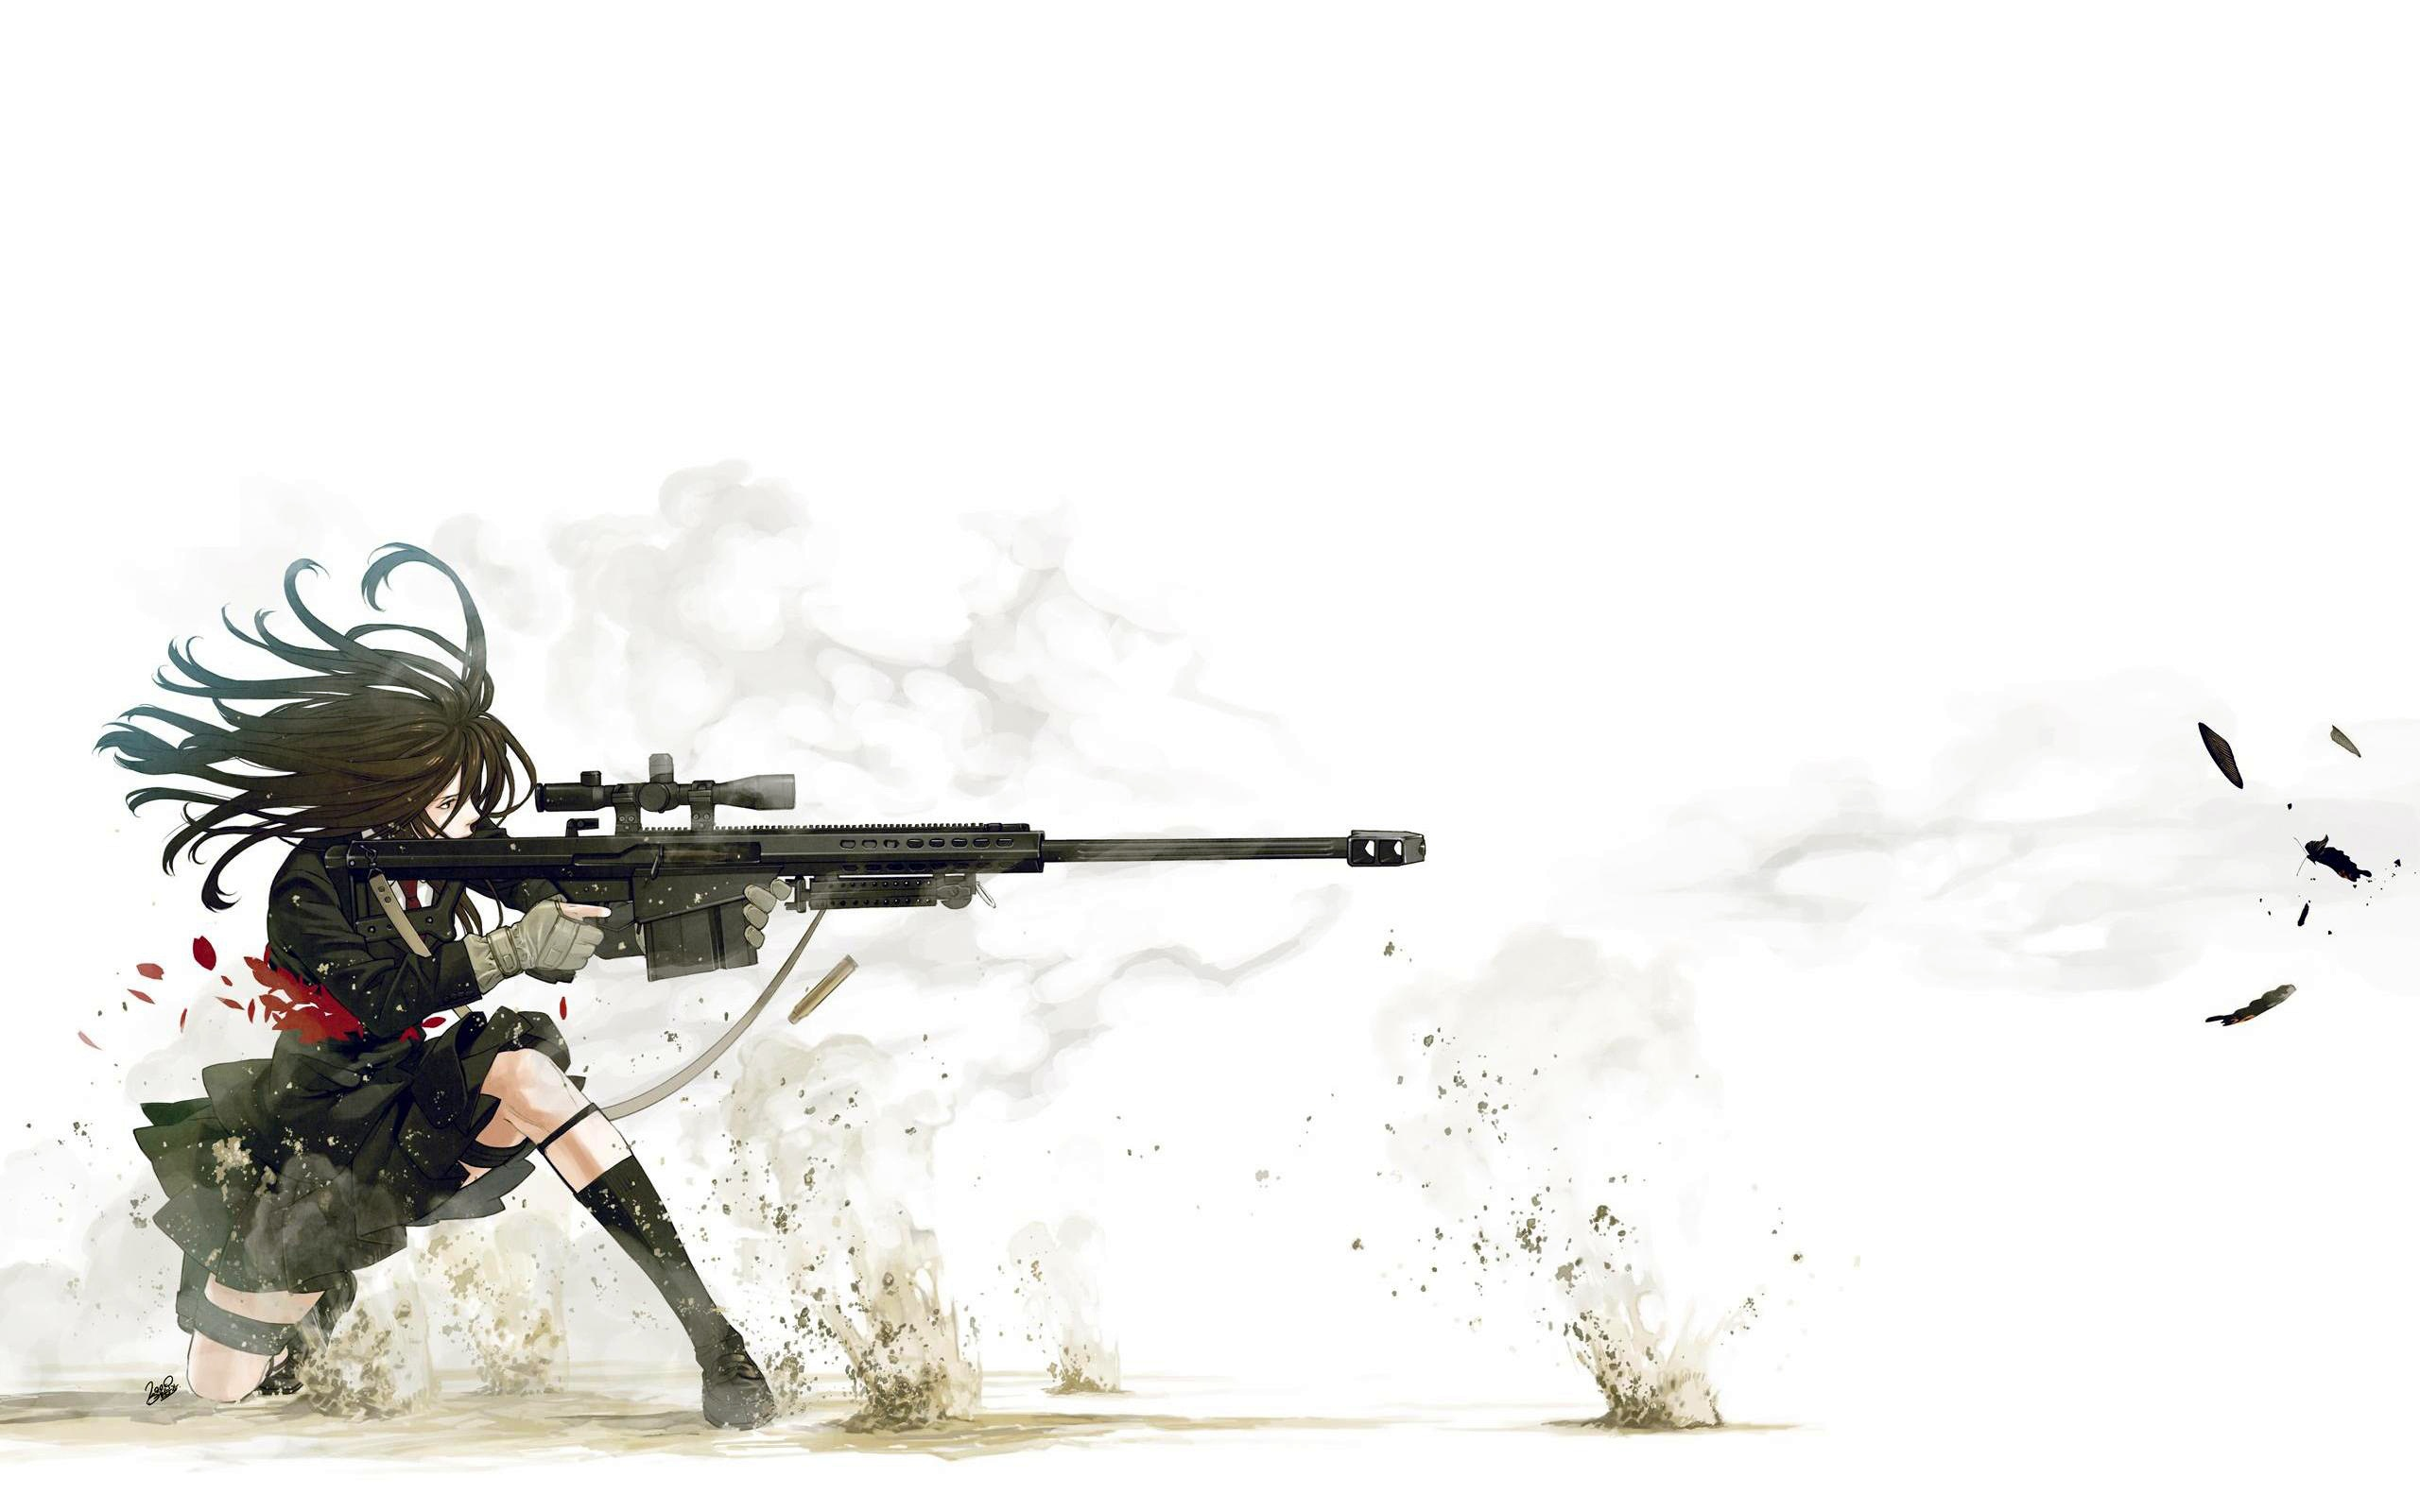 Anime Sniper Wallpapers HD Wallpapers 2560x1600